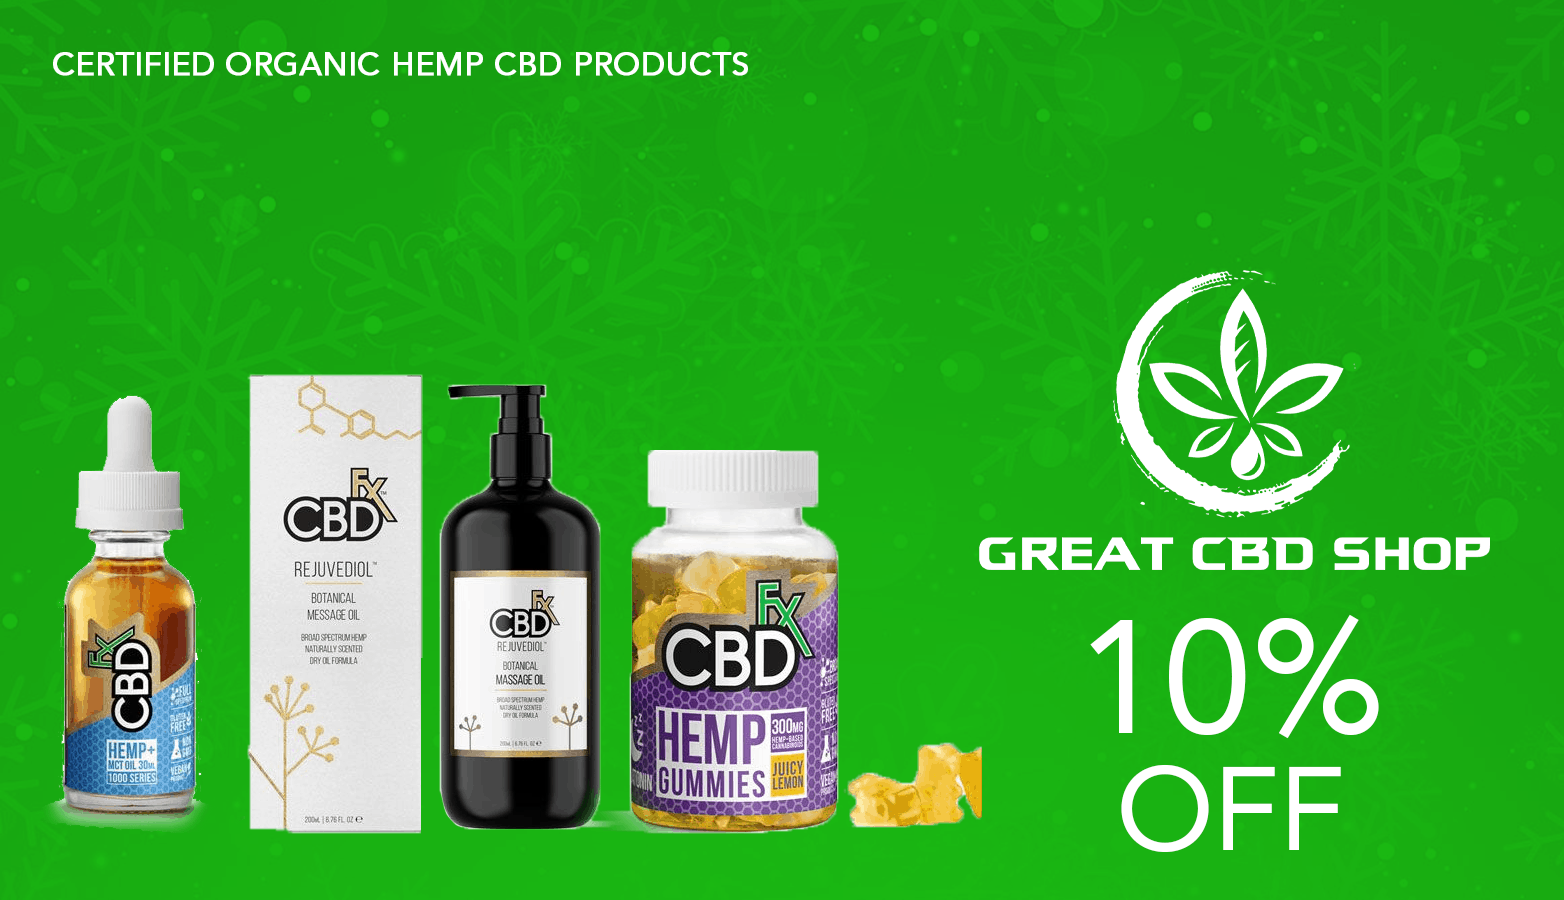 Great CBD Shop Coupon Code Offer Website